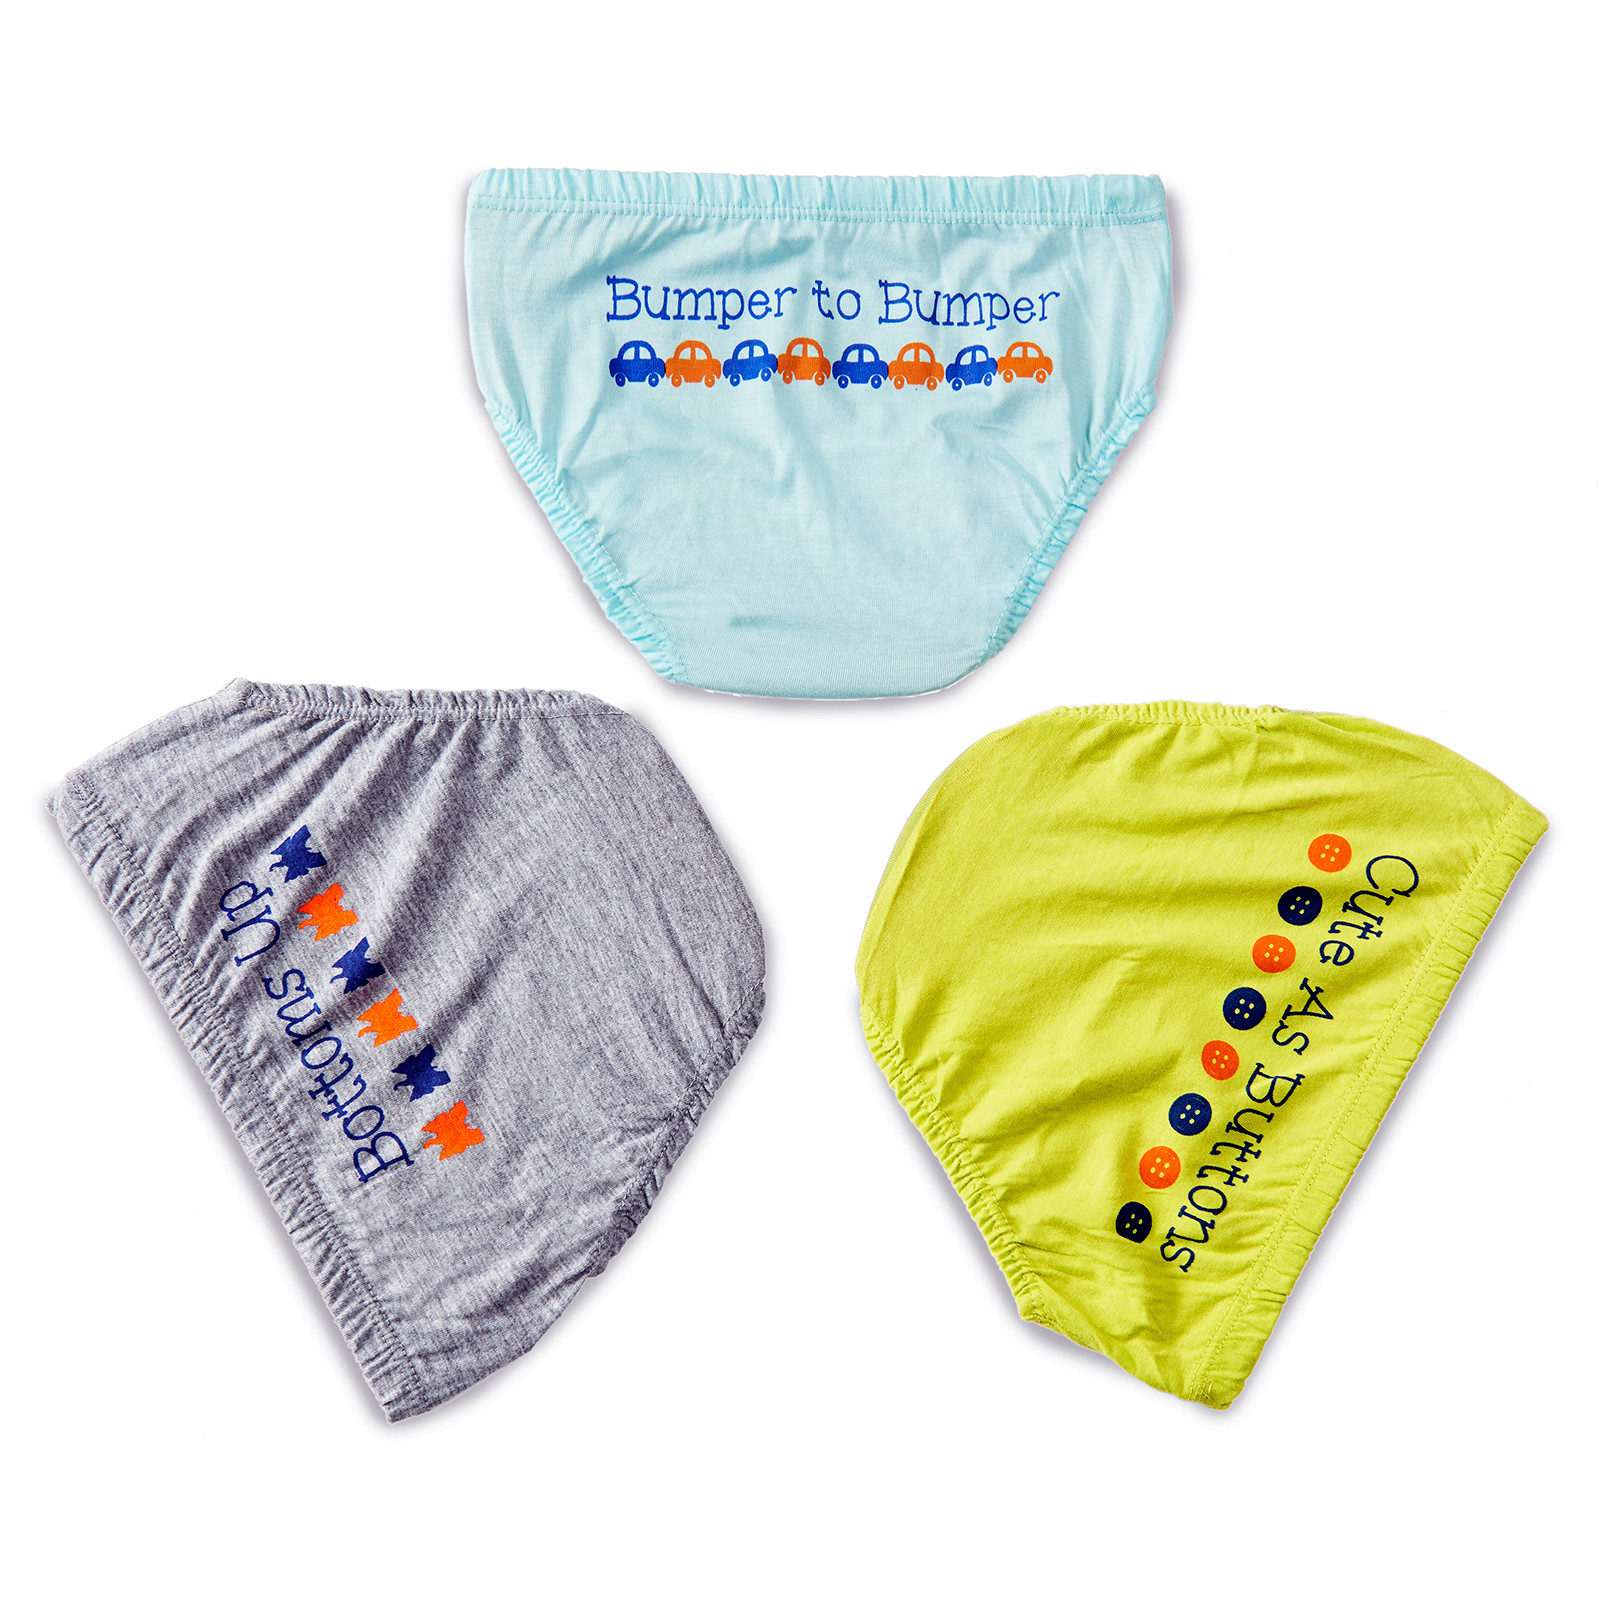 Dedicated Huggies Pull-ups Training Pants For Boys Pick Size One Month Supply-new Orders Are Welcome. Disposable Diapers